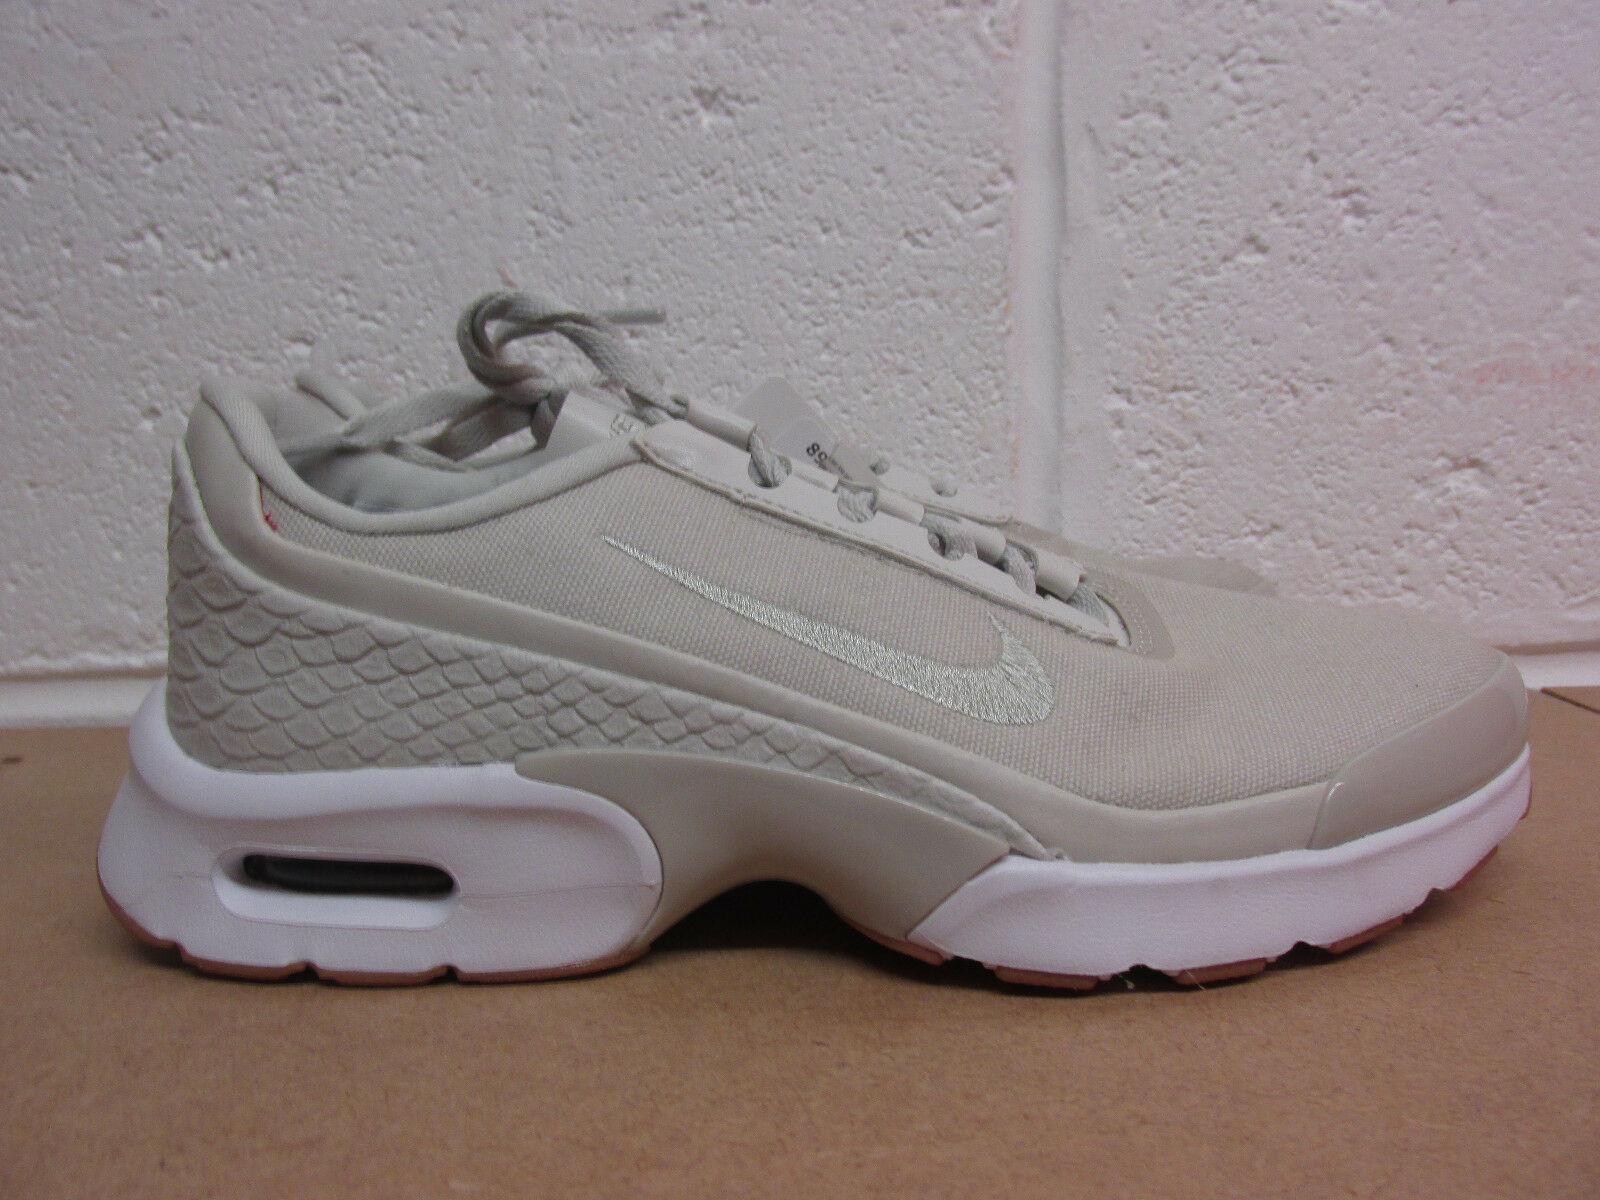 Nike air max jewell 896195 003 womens trainers sneakers shoes SAMPLE